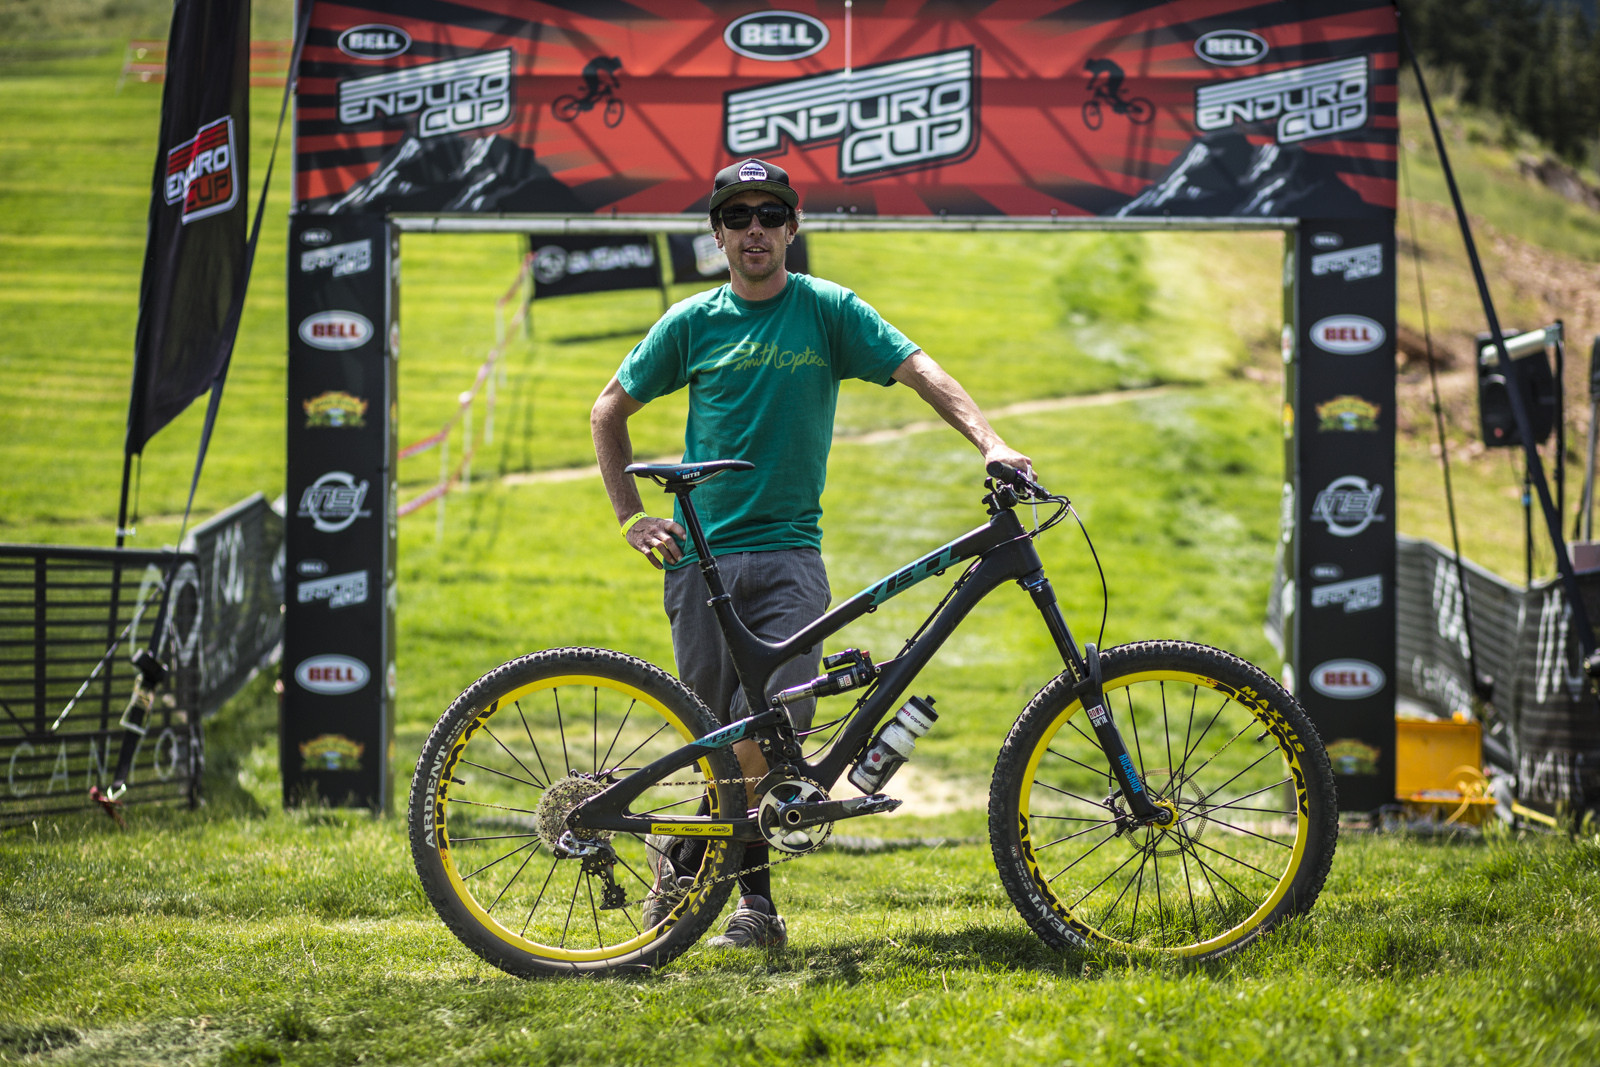 Nate Hills with his Yeti SB66c at Bell Enduro Cup at Canyons - Race Report, Photos and Video: Bell Enduro Cup at Canyons Resort - Mountain Biking Pictures - Vital MTB